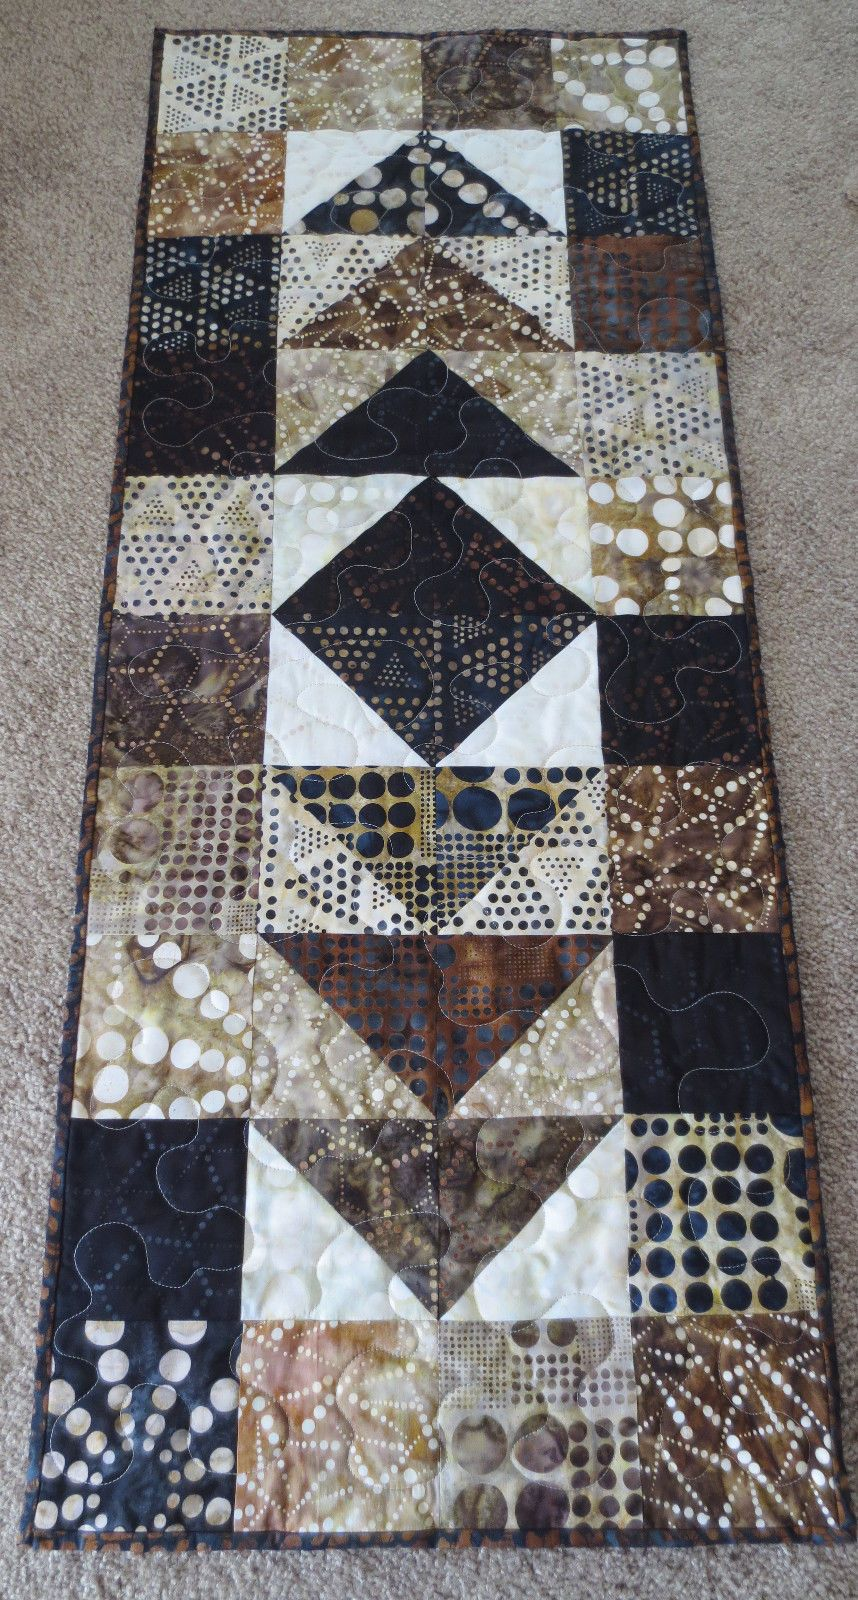 table to best work a quilter with patterns quilted and how of quilt runner diy diary ideas aflk furniture popular pict the fall